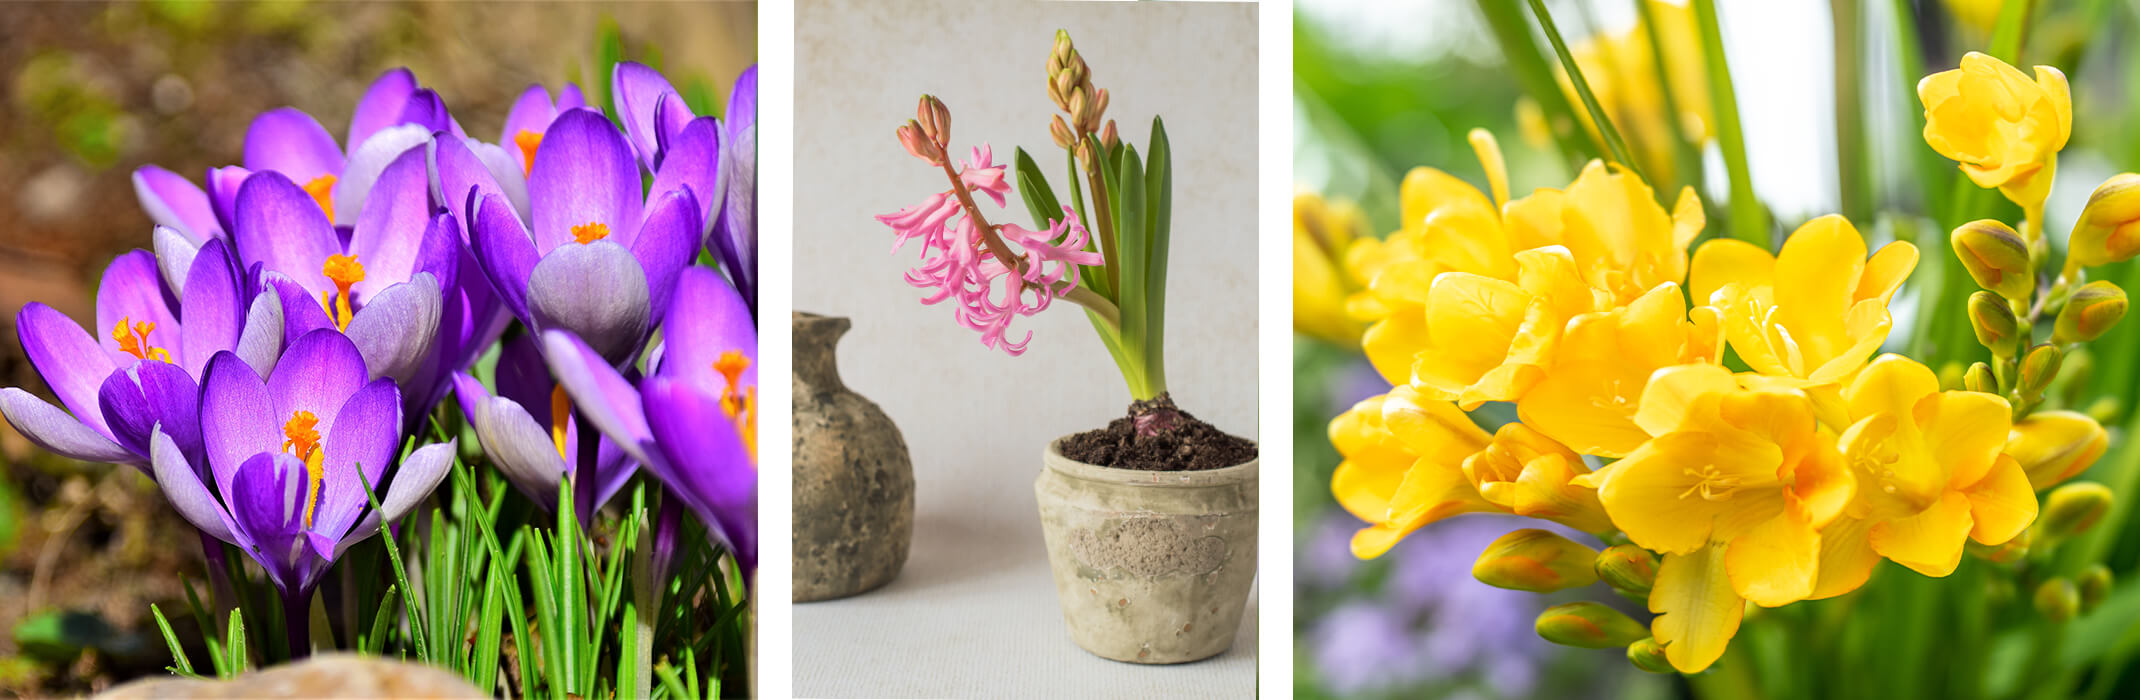 A collage of 3 images: purple crocus flowers, pink hyacinth in a pot near a vase, and yellow freesia blooms